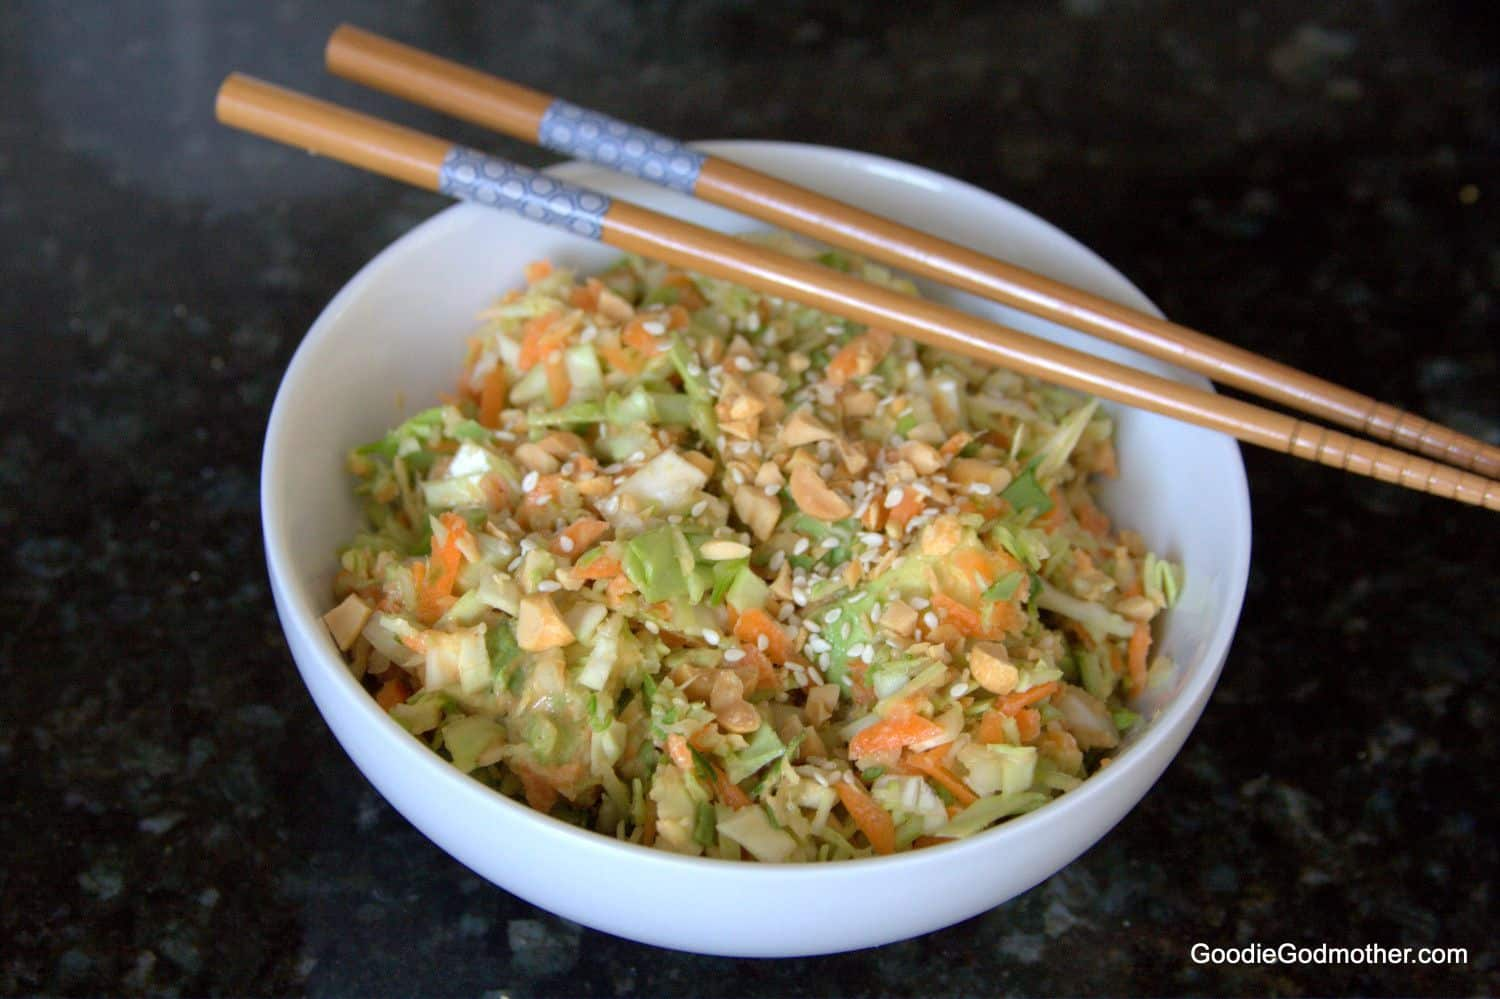 This delicious Thai Peanut Salad makes a quick and easy light lunch or side dish! #vegan #healthy